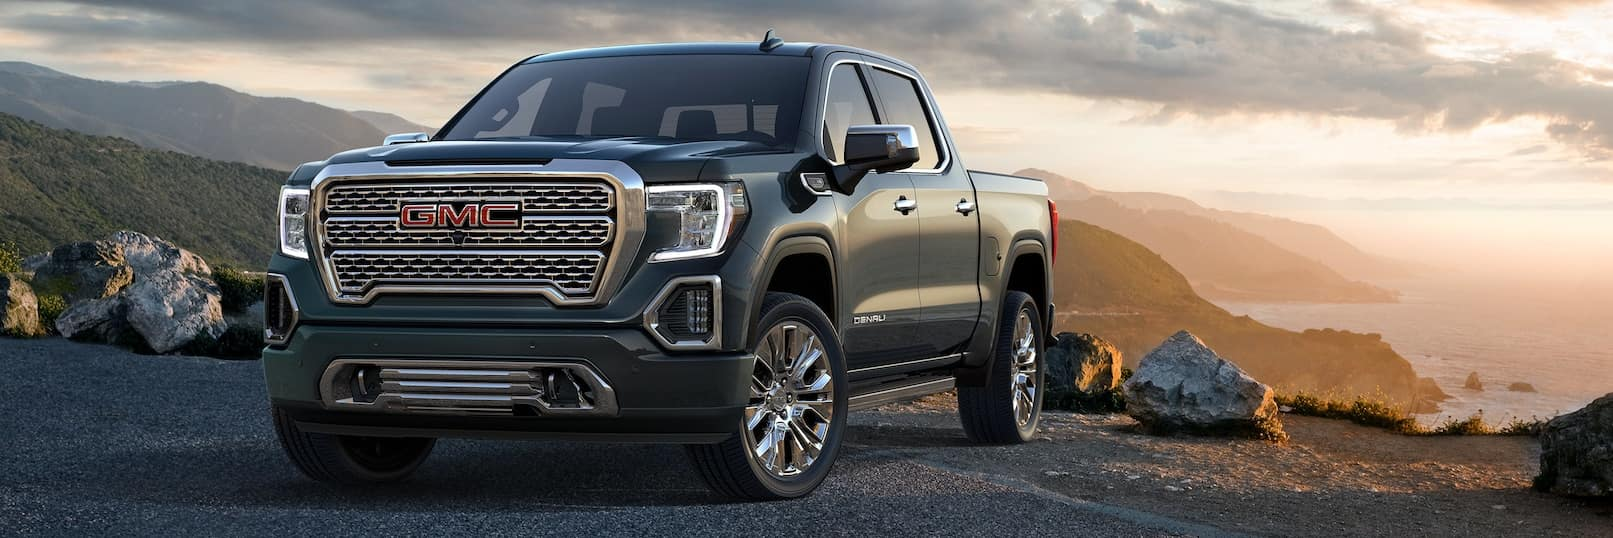 GMC Friendswood Dealership